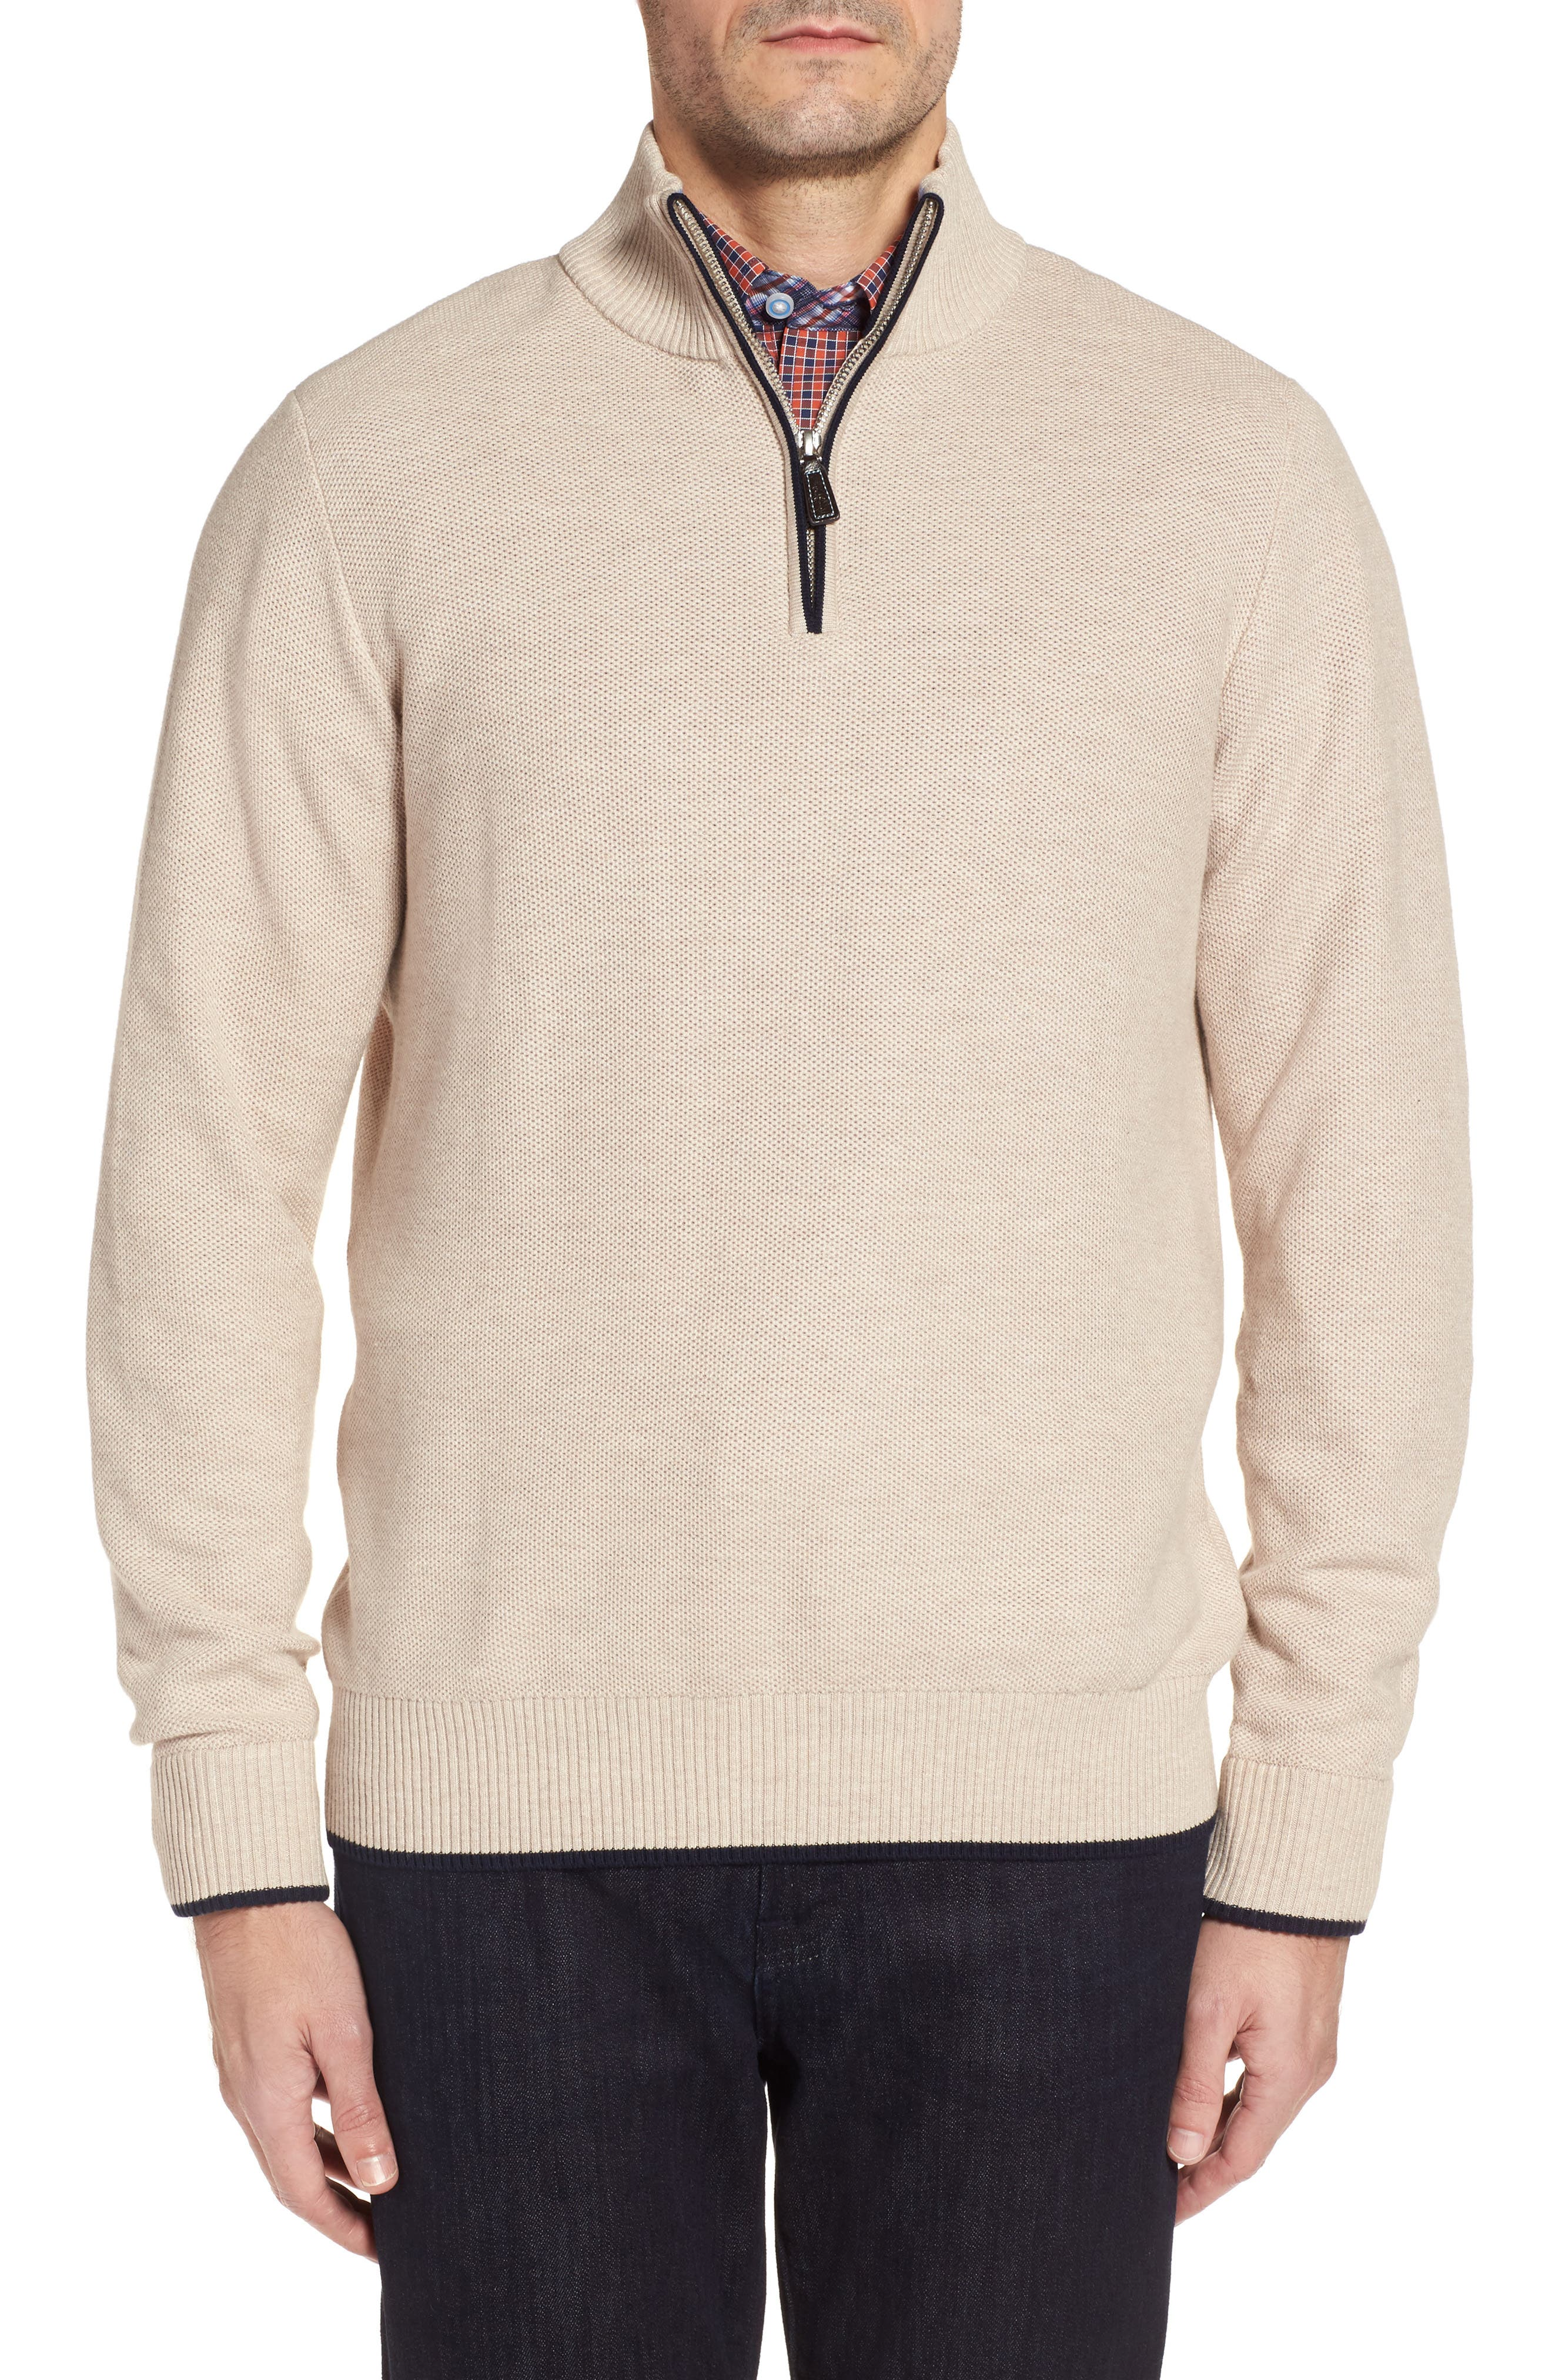 TailorByrd Sikes Tipped Quarter Zip Sweater